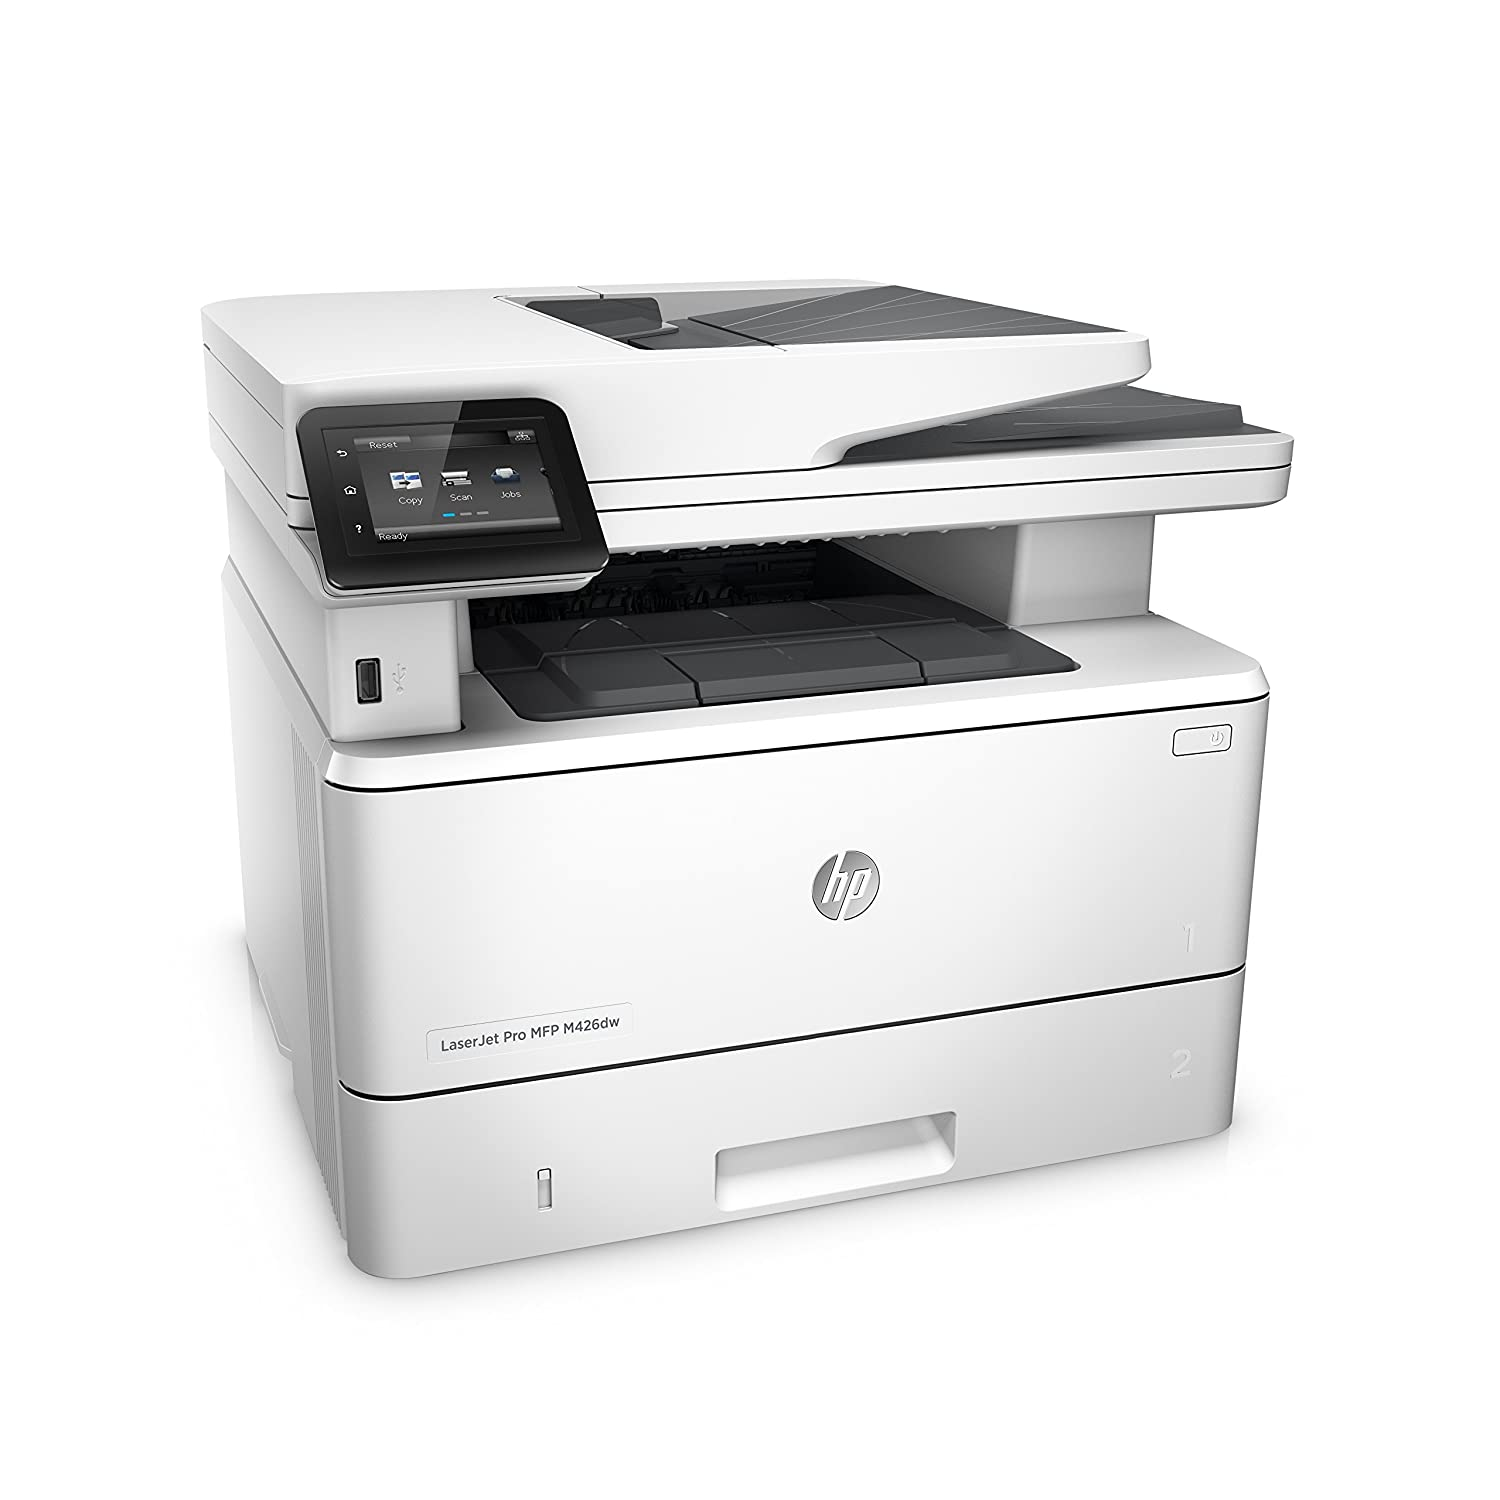 HP LaserJet Pro M426dw Laser Multifunktionsdrucker: Amazon.de ...